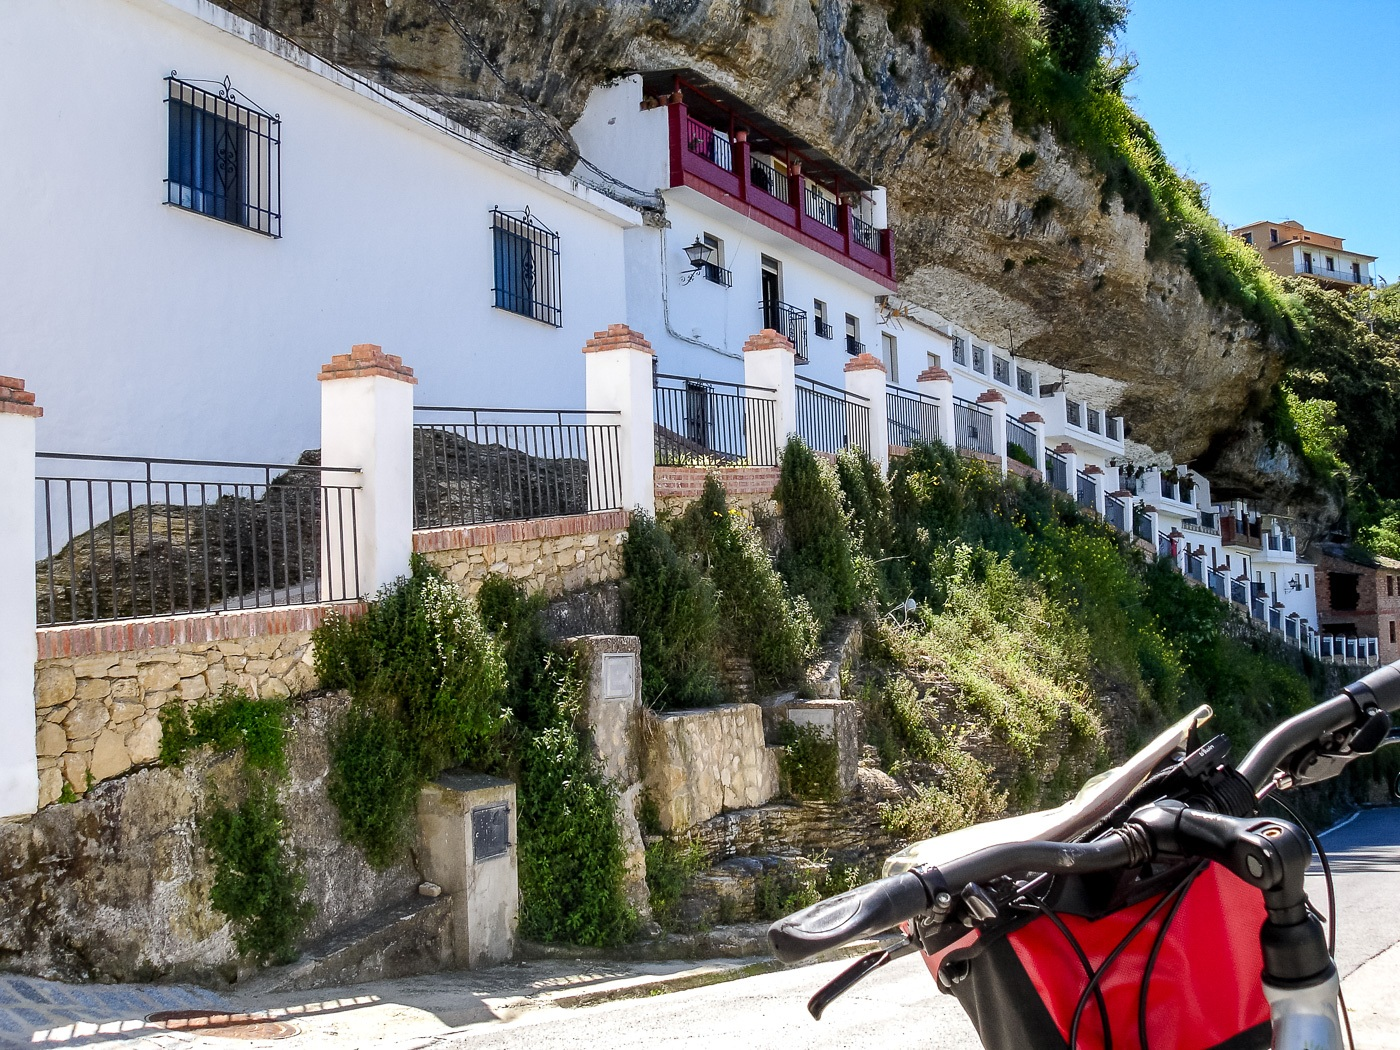 S-cape-Ronda-and-Seville-bike-in-Setenil-17